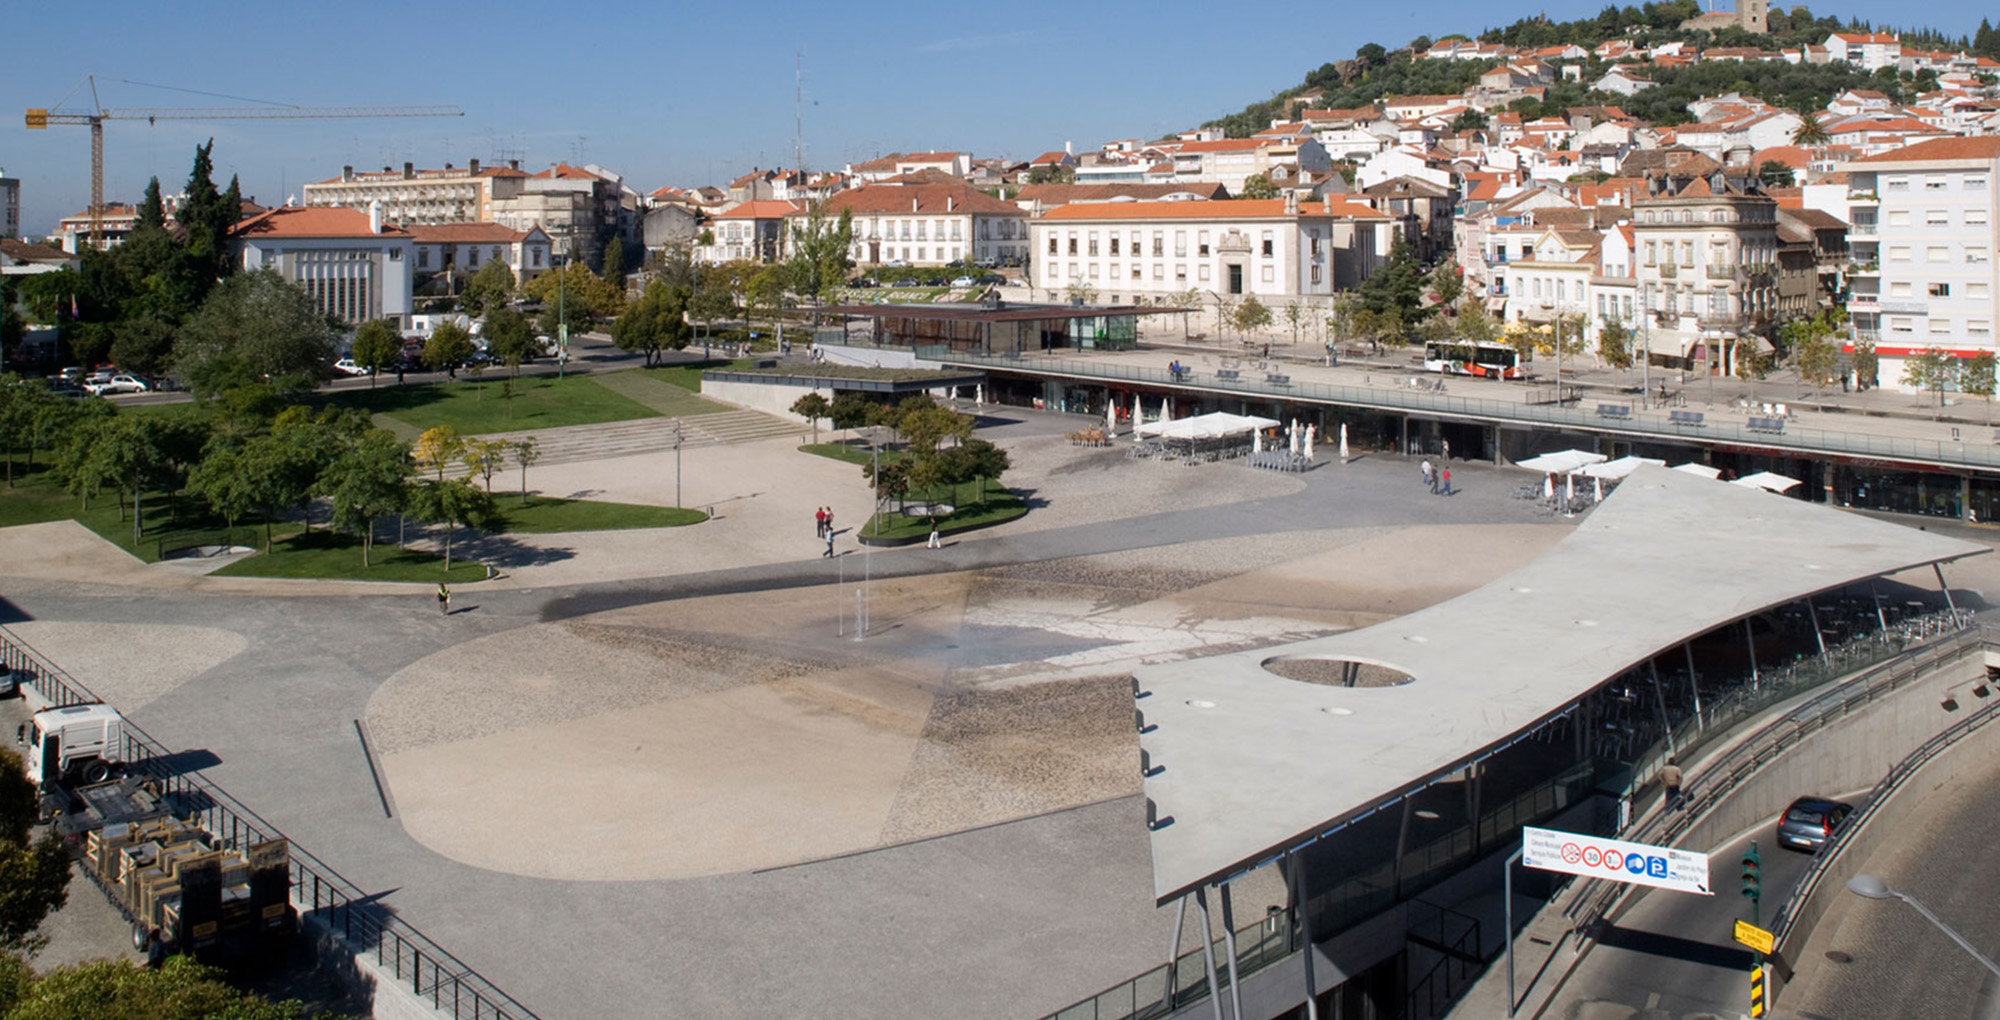 Largo da Devesa City Square in Castelo Branco, Portugal